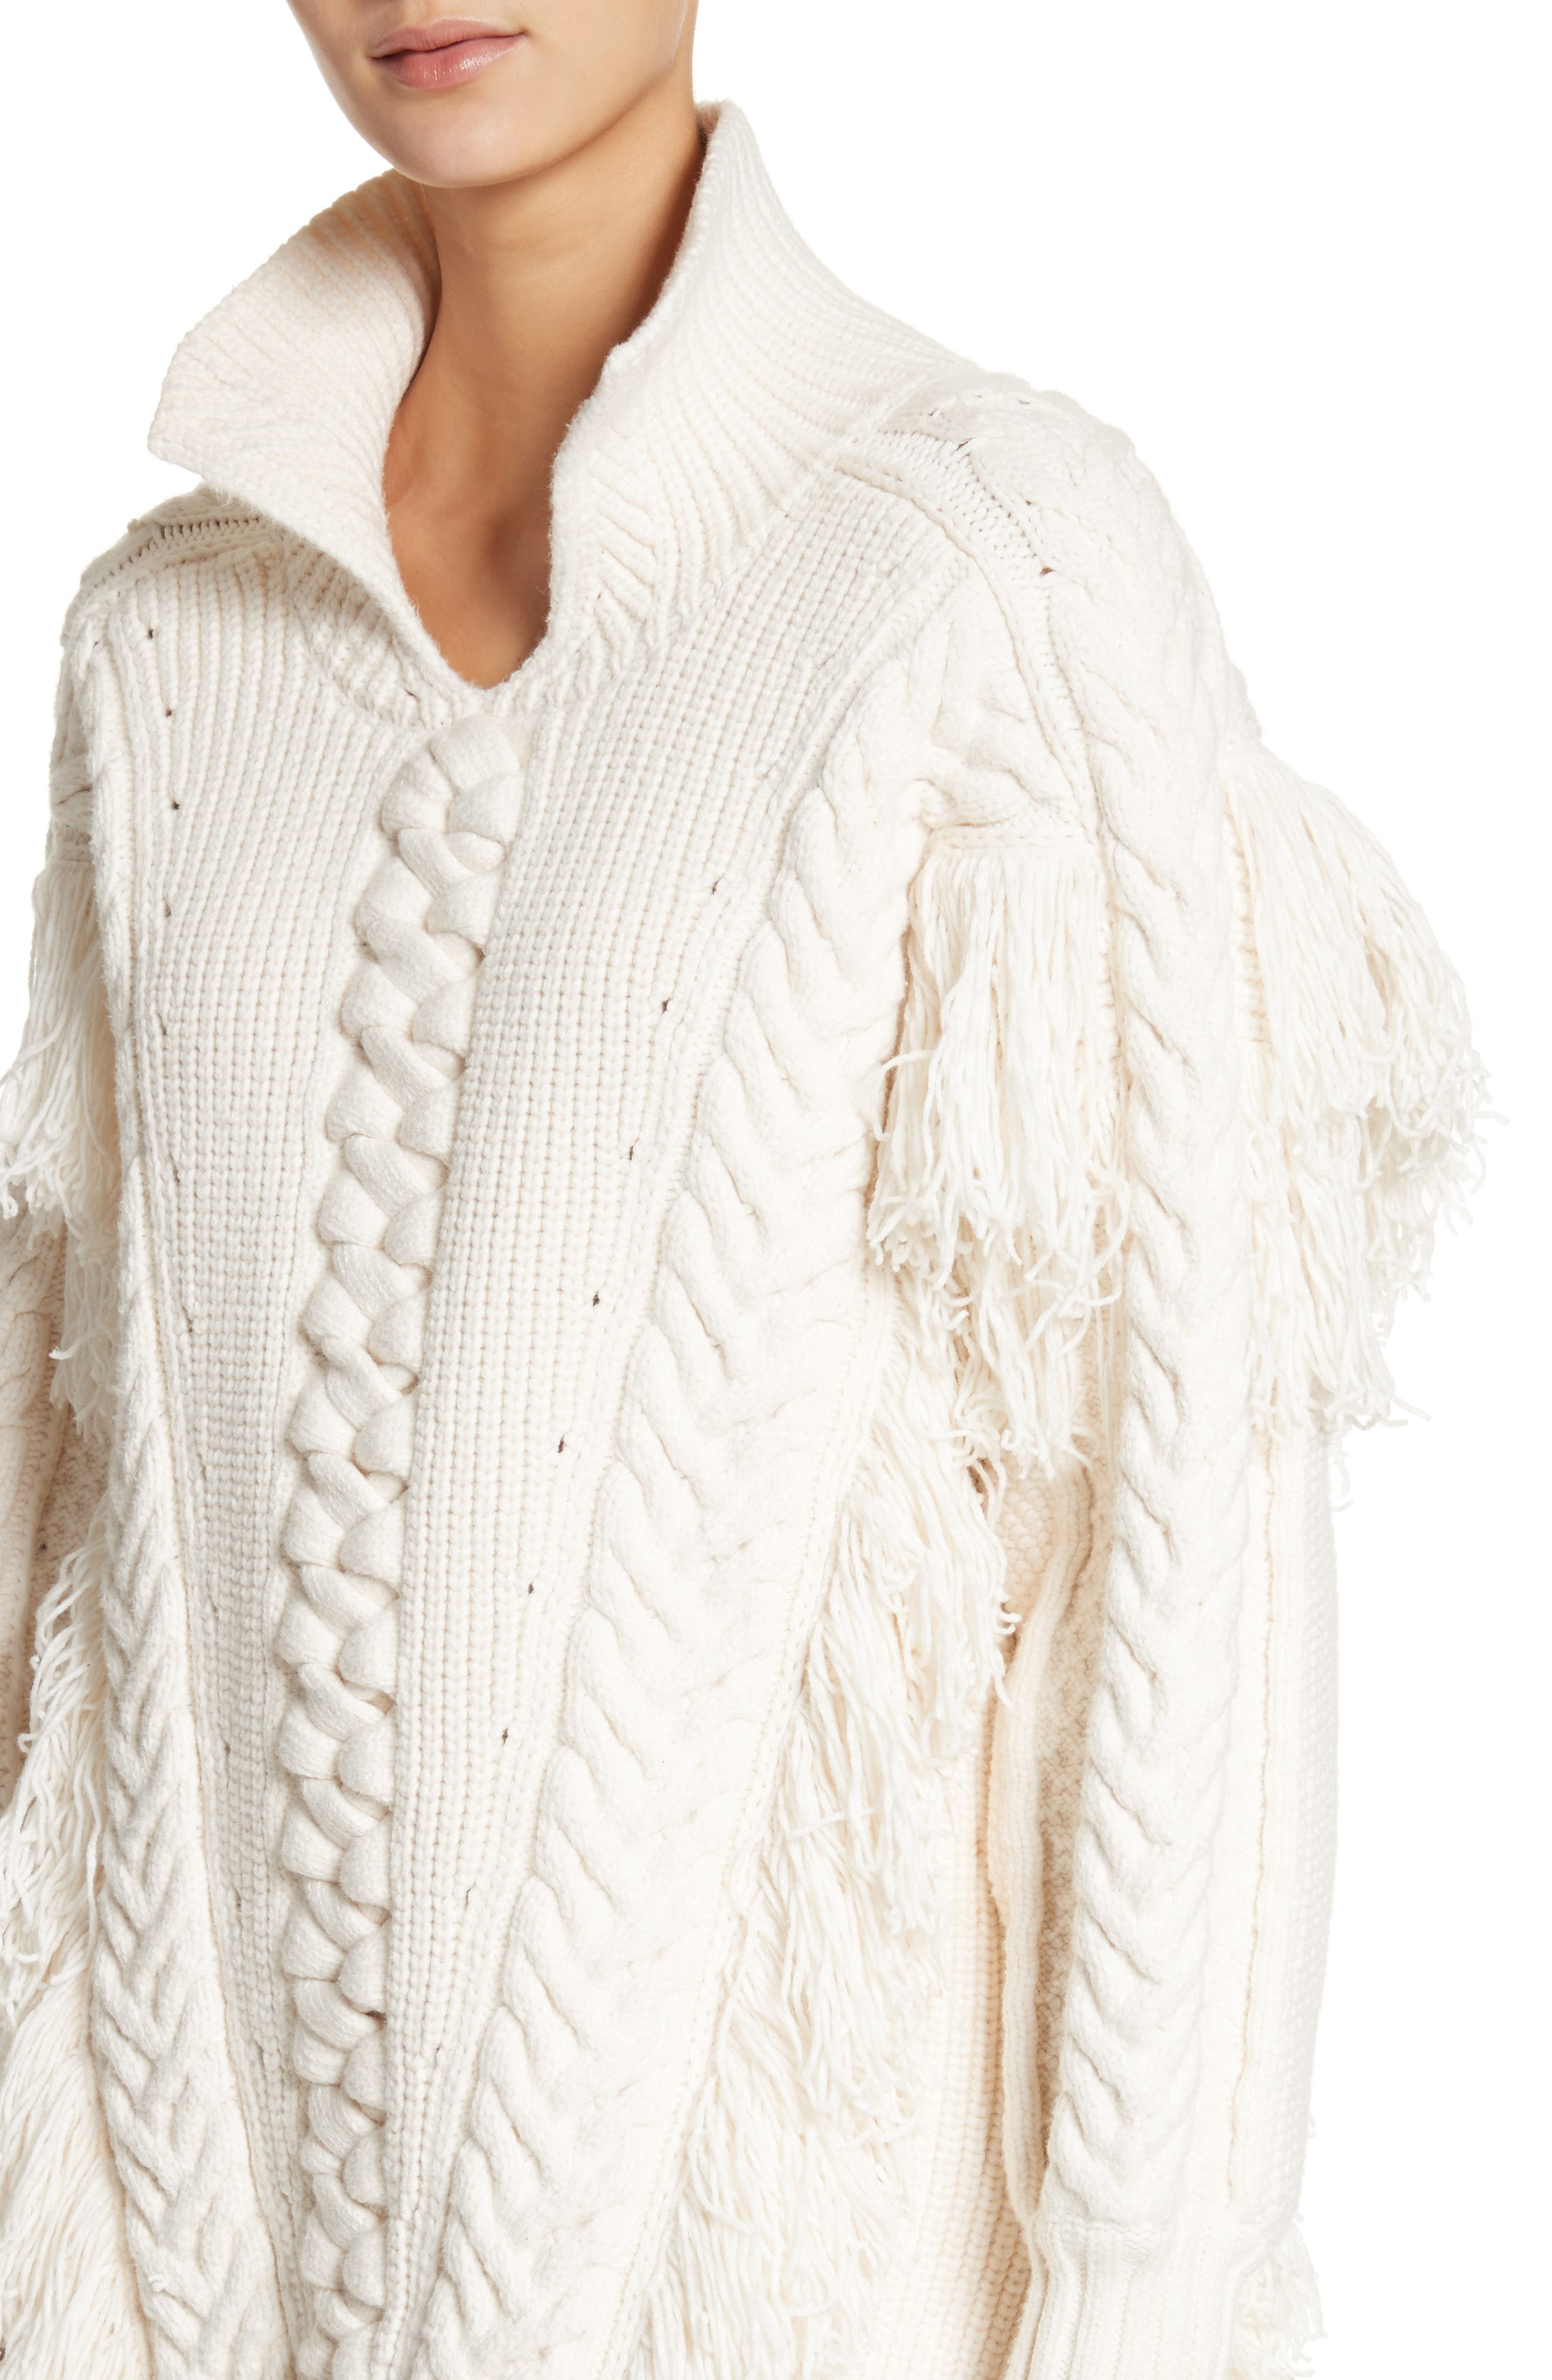 Borbore Fringed Cable Knit Sweater,                             Alternate thumbnail 4, color,                             103